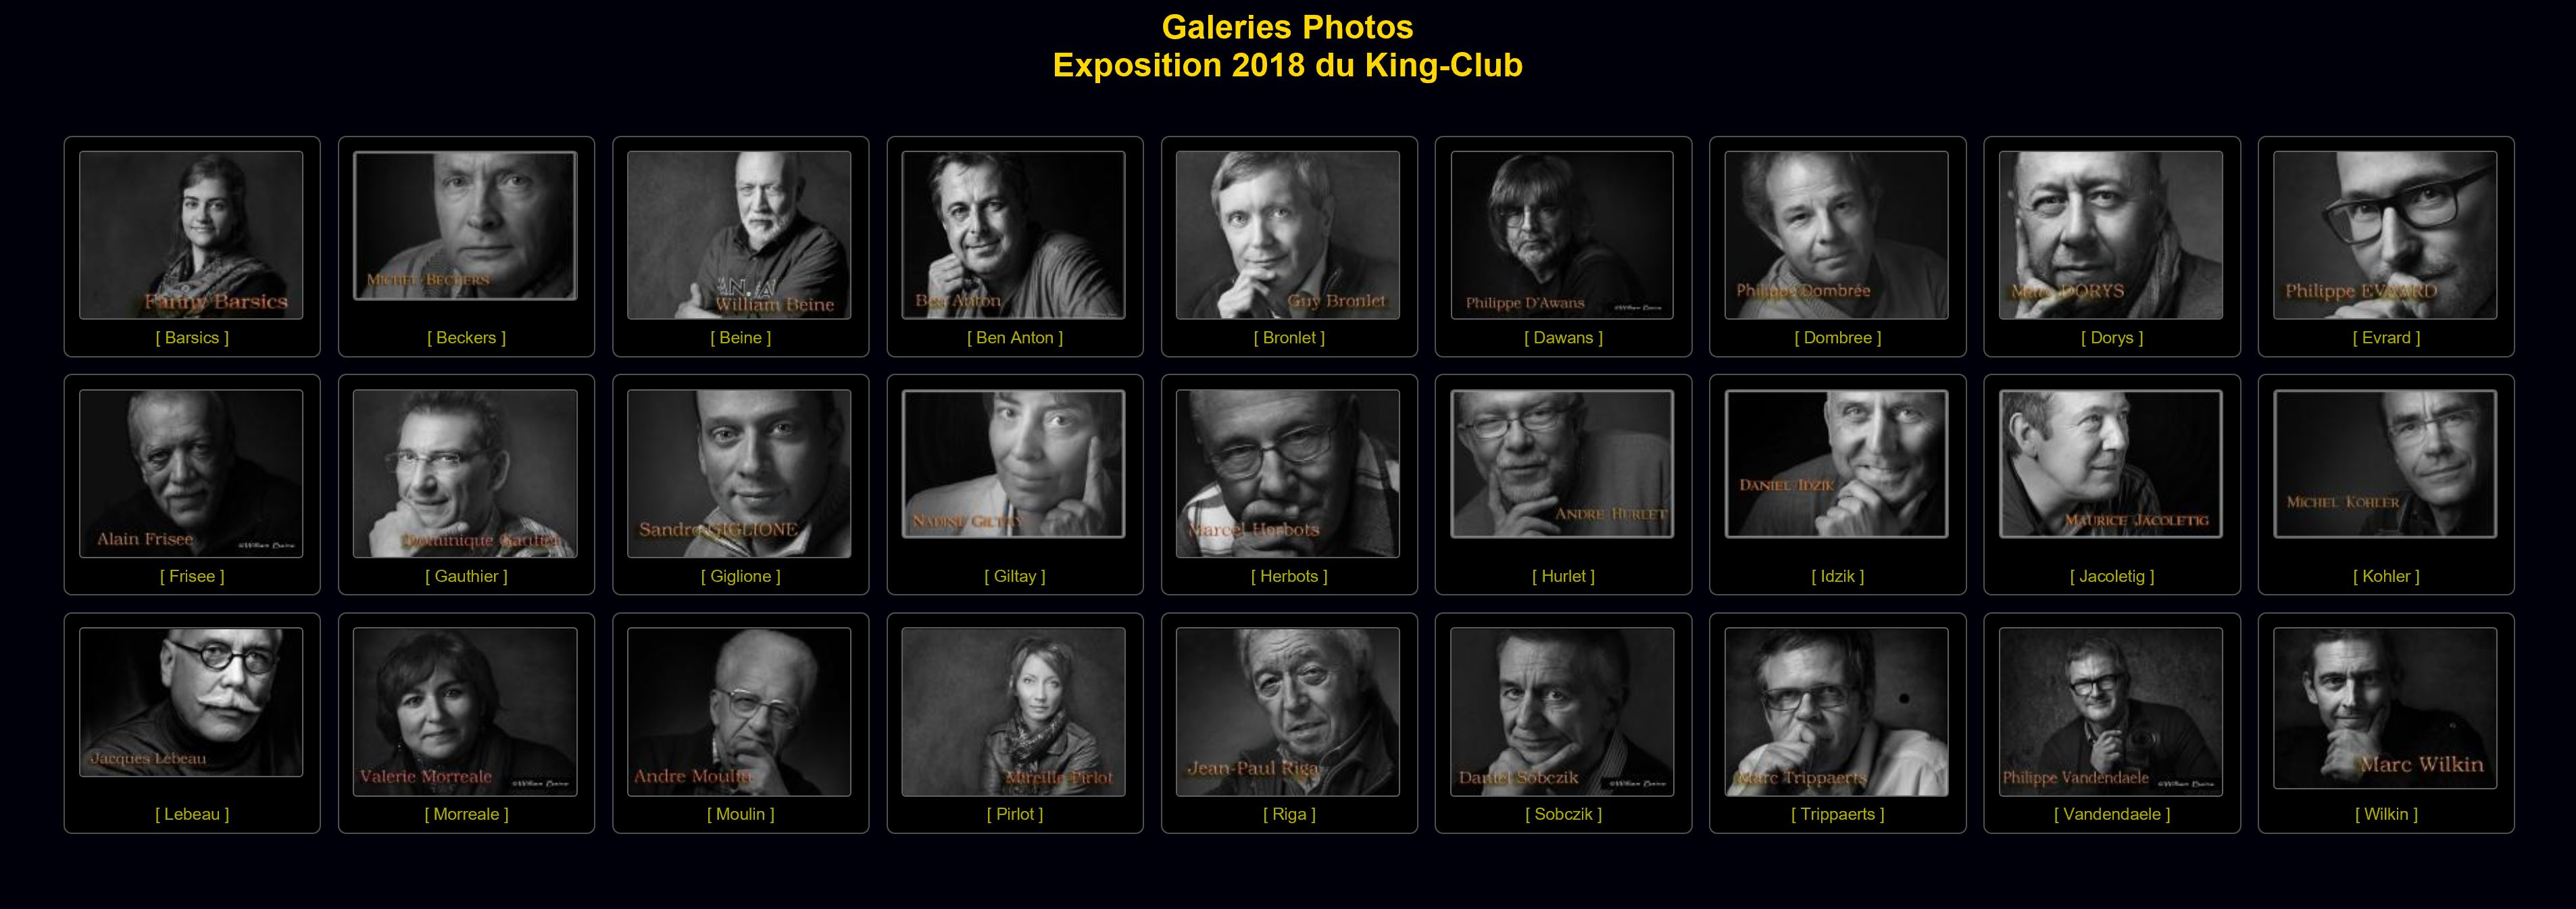 Expo 2018 King-Club